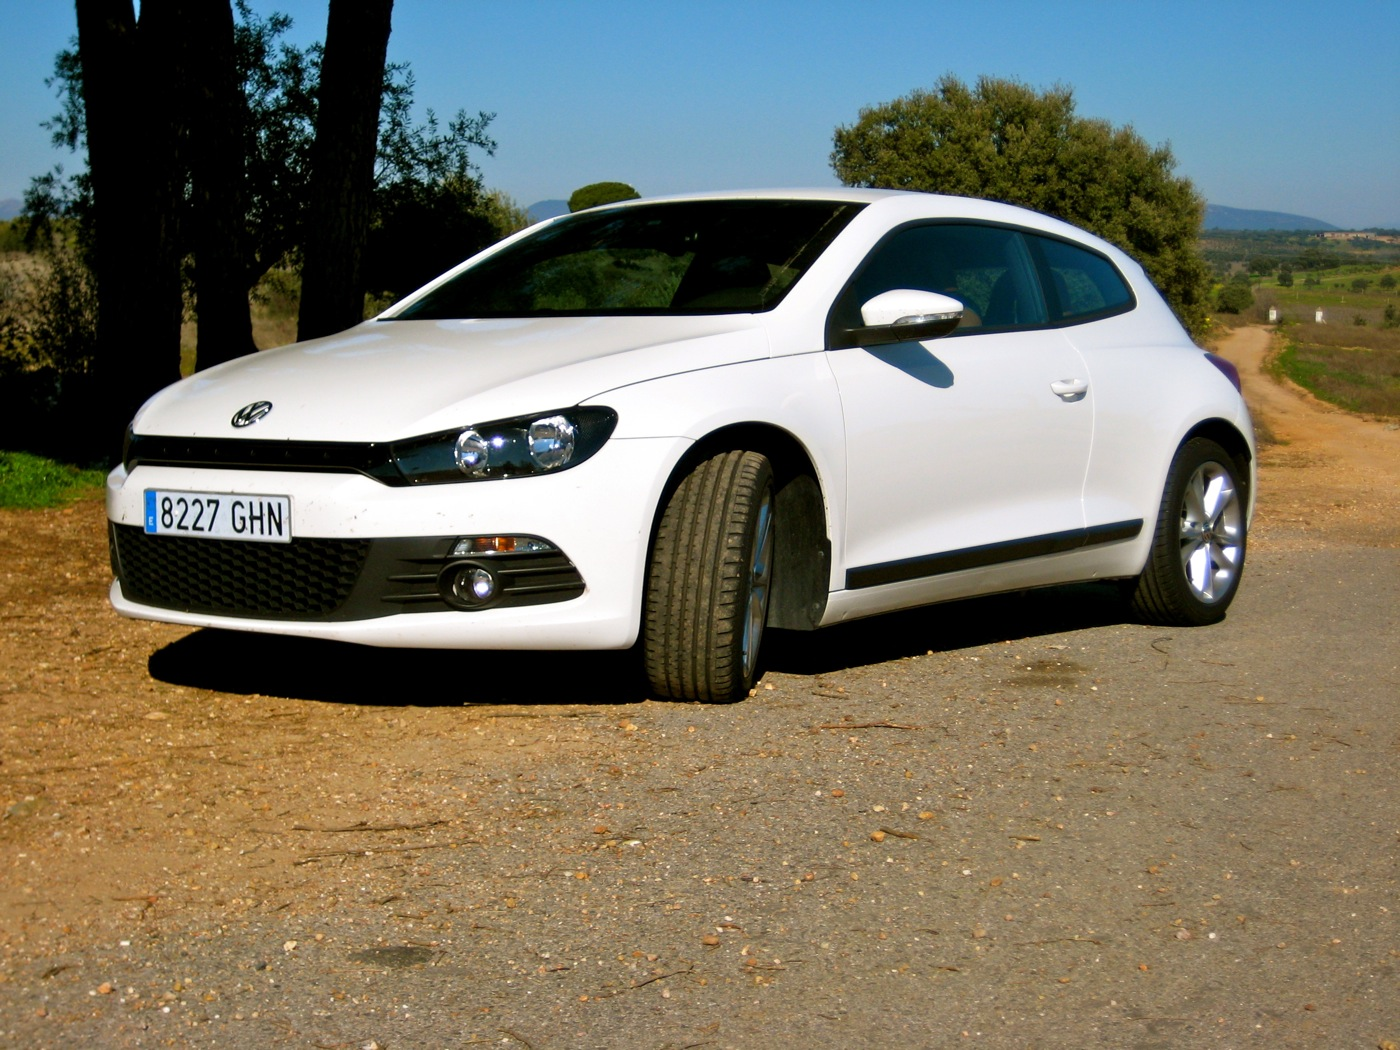 prueba del nuevo motor en volkswagen scirocco 2 0 tsi dsg. Black Bedroom Furniture Sets. Home Design Ideas